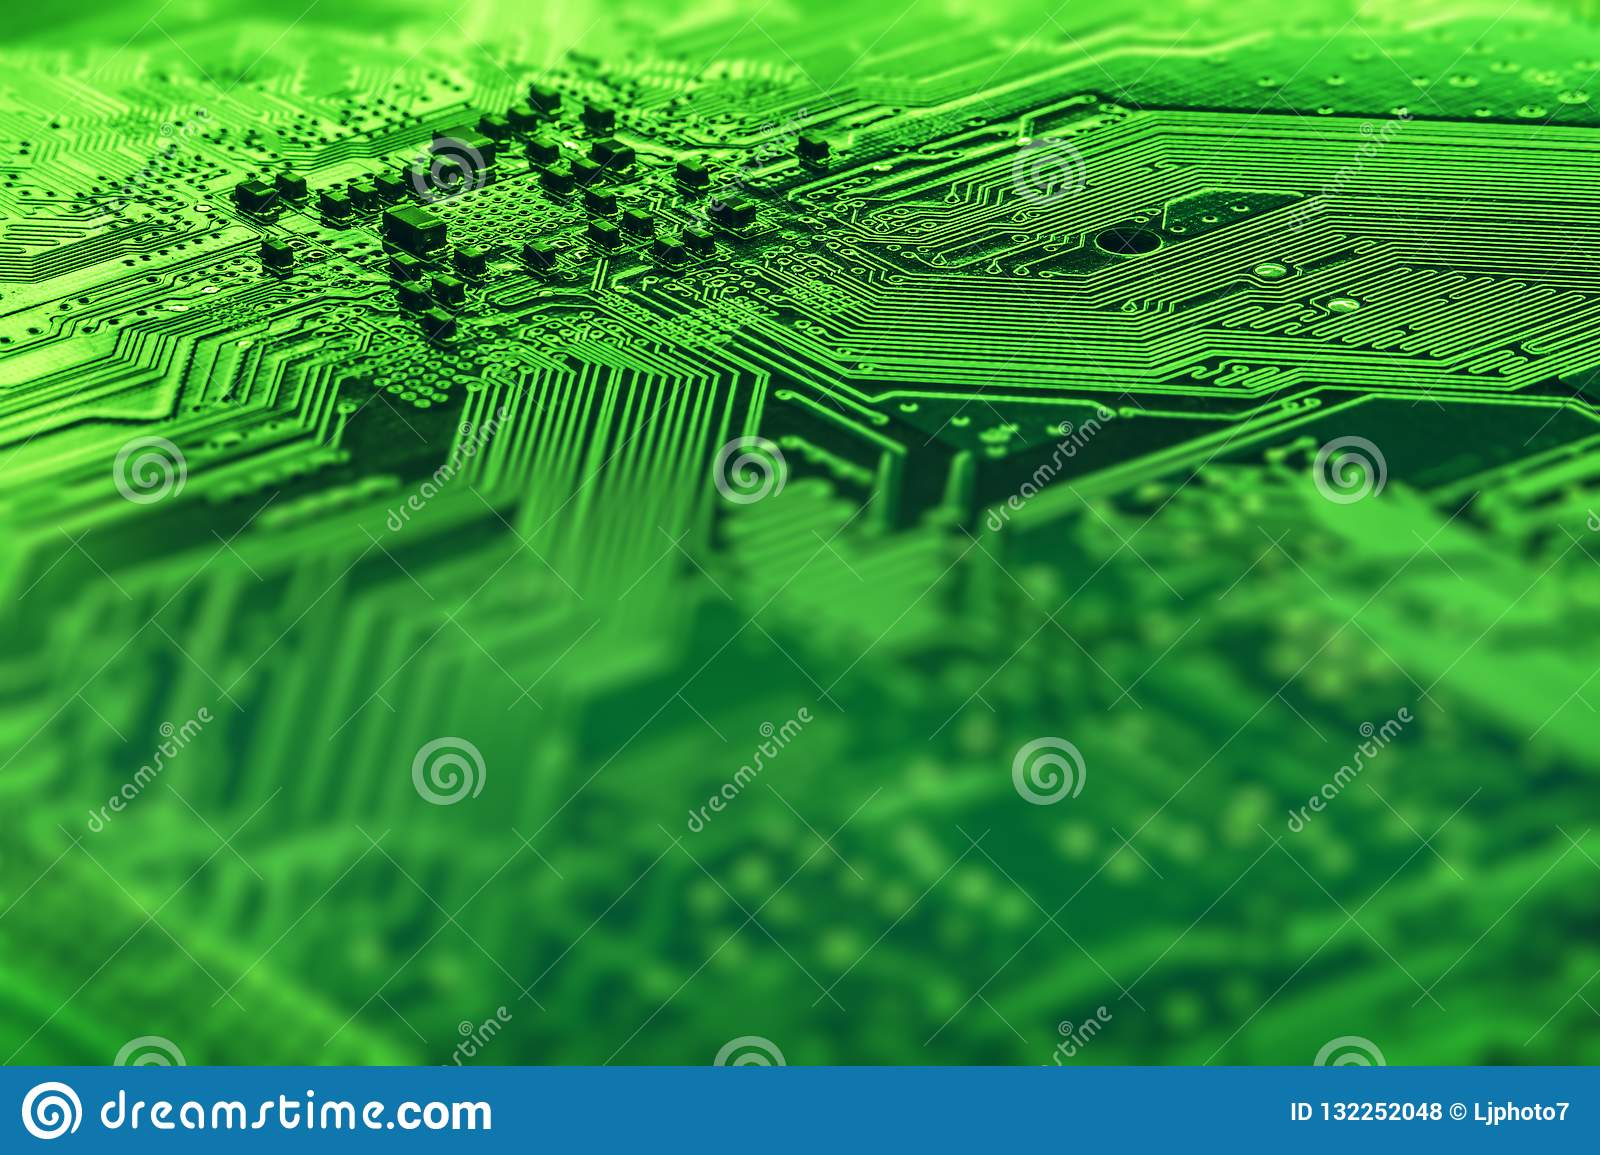 Background Image Texture Of Motherboard Digital Microchips Stock Green Computer Chip Circuit Board Technology Electronic Hardware Tech Science Information Engineering Component